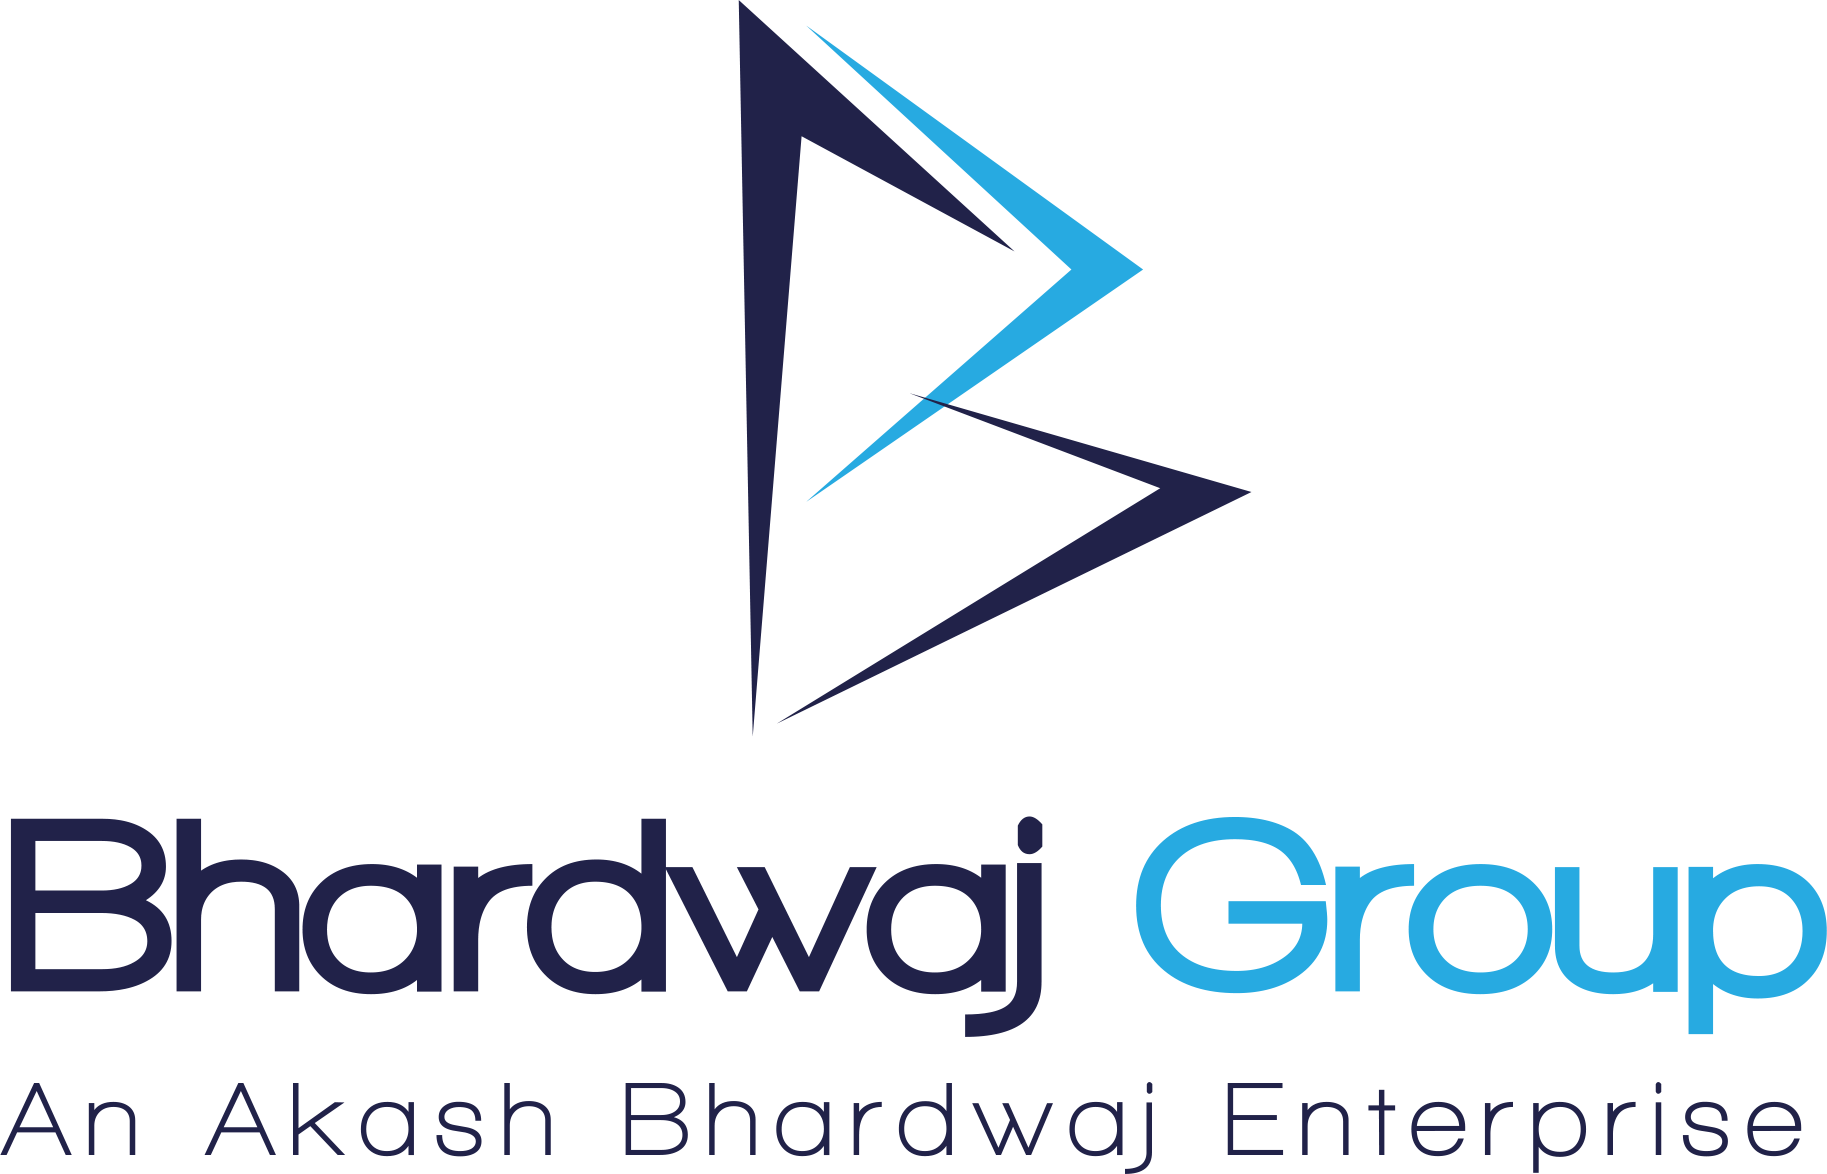 Bharadwaj Group